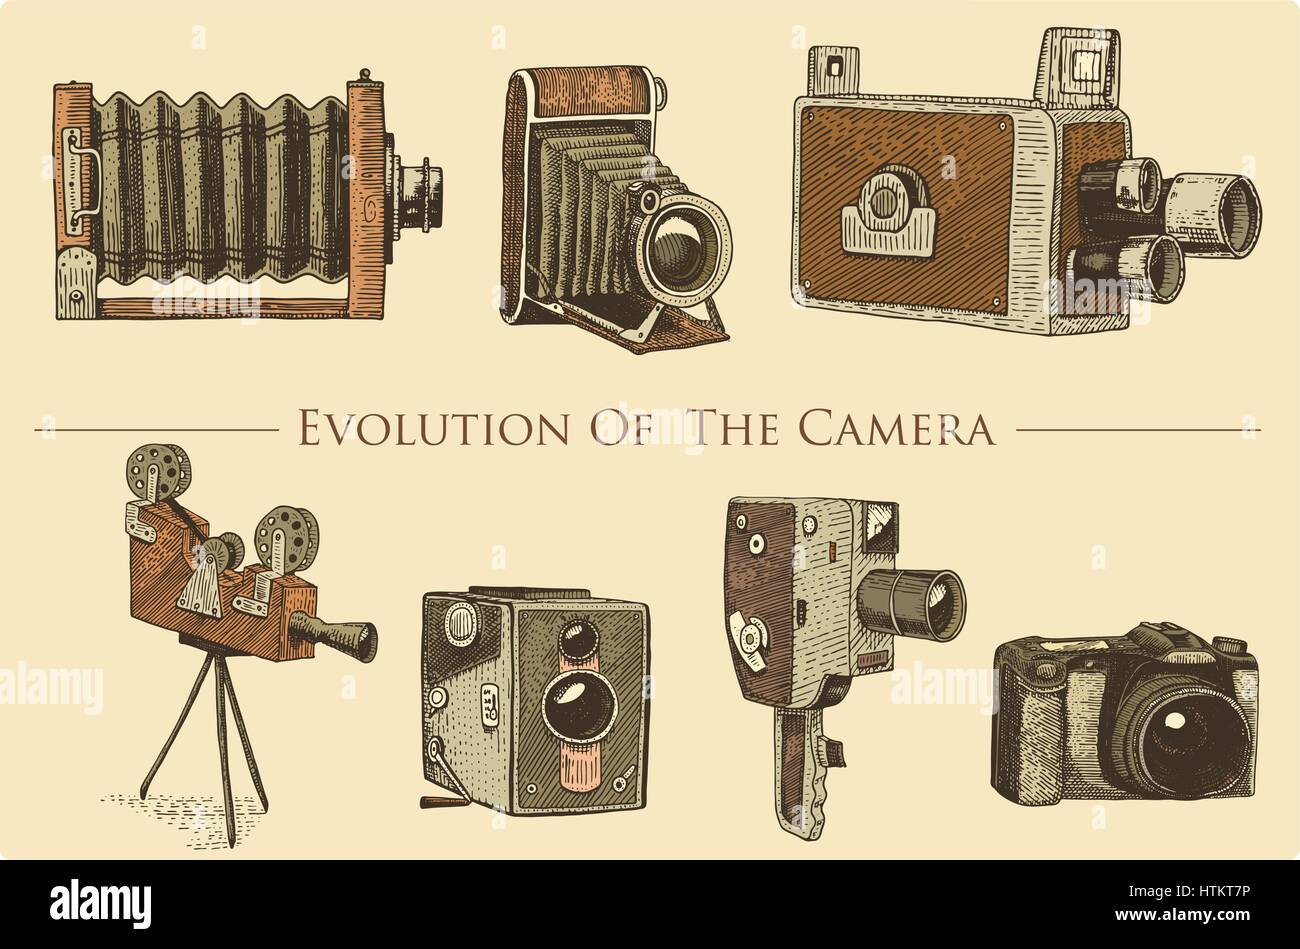 evolution of the photo video film movie camera from first till now vintage engraved hand drawn in sketch or wood cut style old looking retro lens